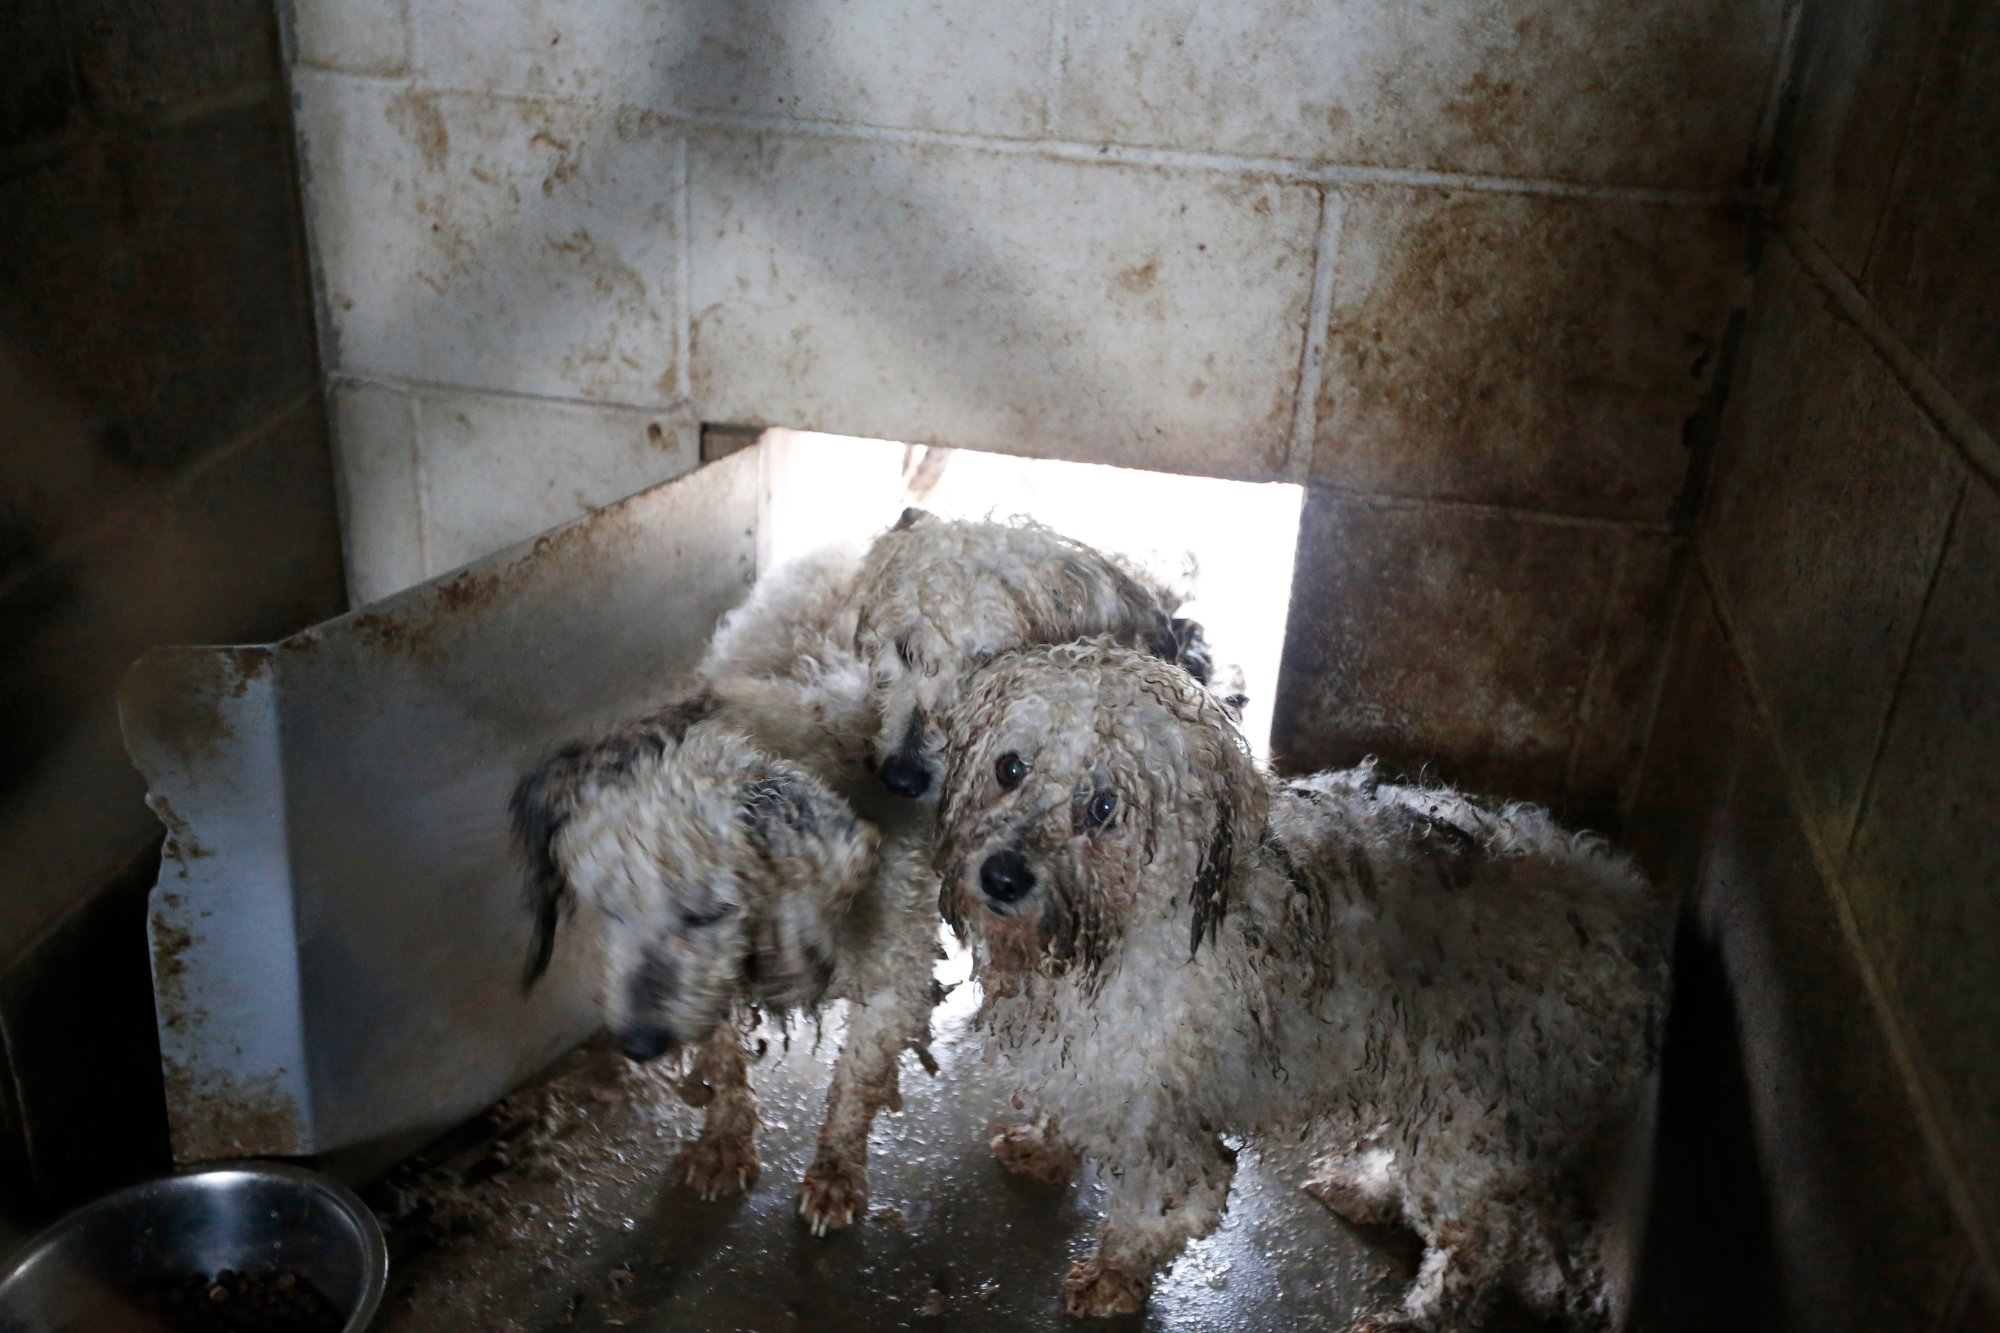 Small dogs huddle in a muddy pen during an animal rescue, Thursday, March 3, 2016, in Madison Co., Arkansas. (Brandon Wade/AP Images for The Humane Society of the United States)